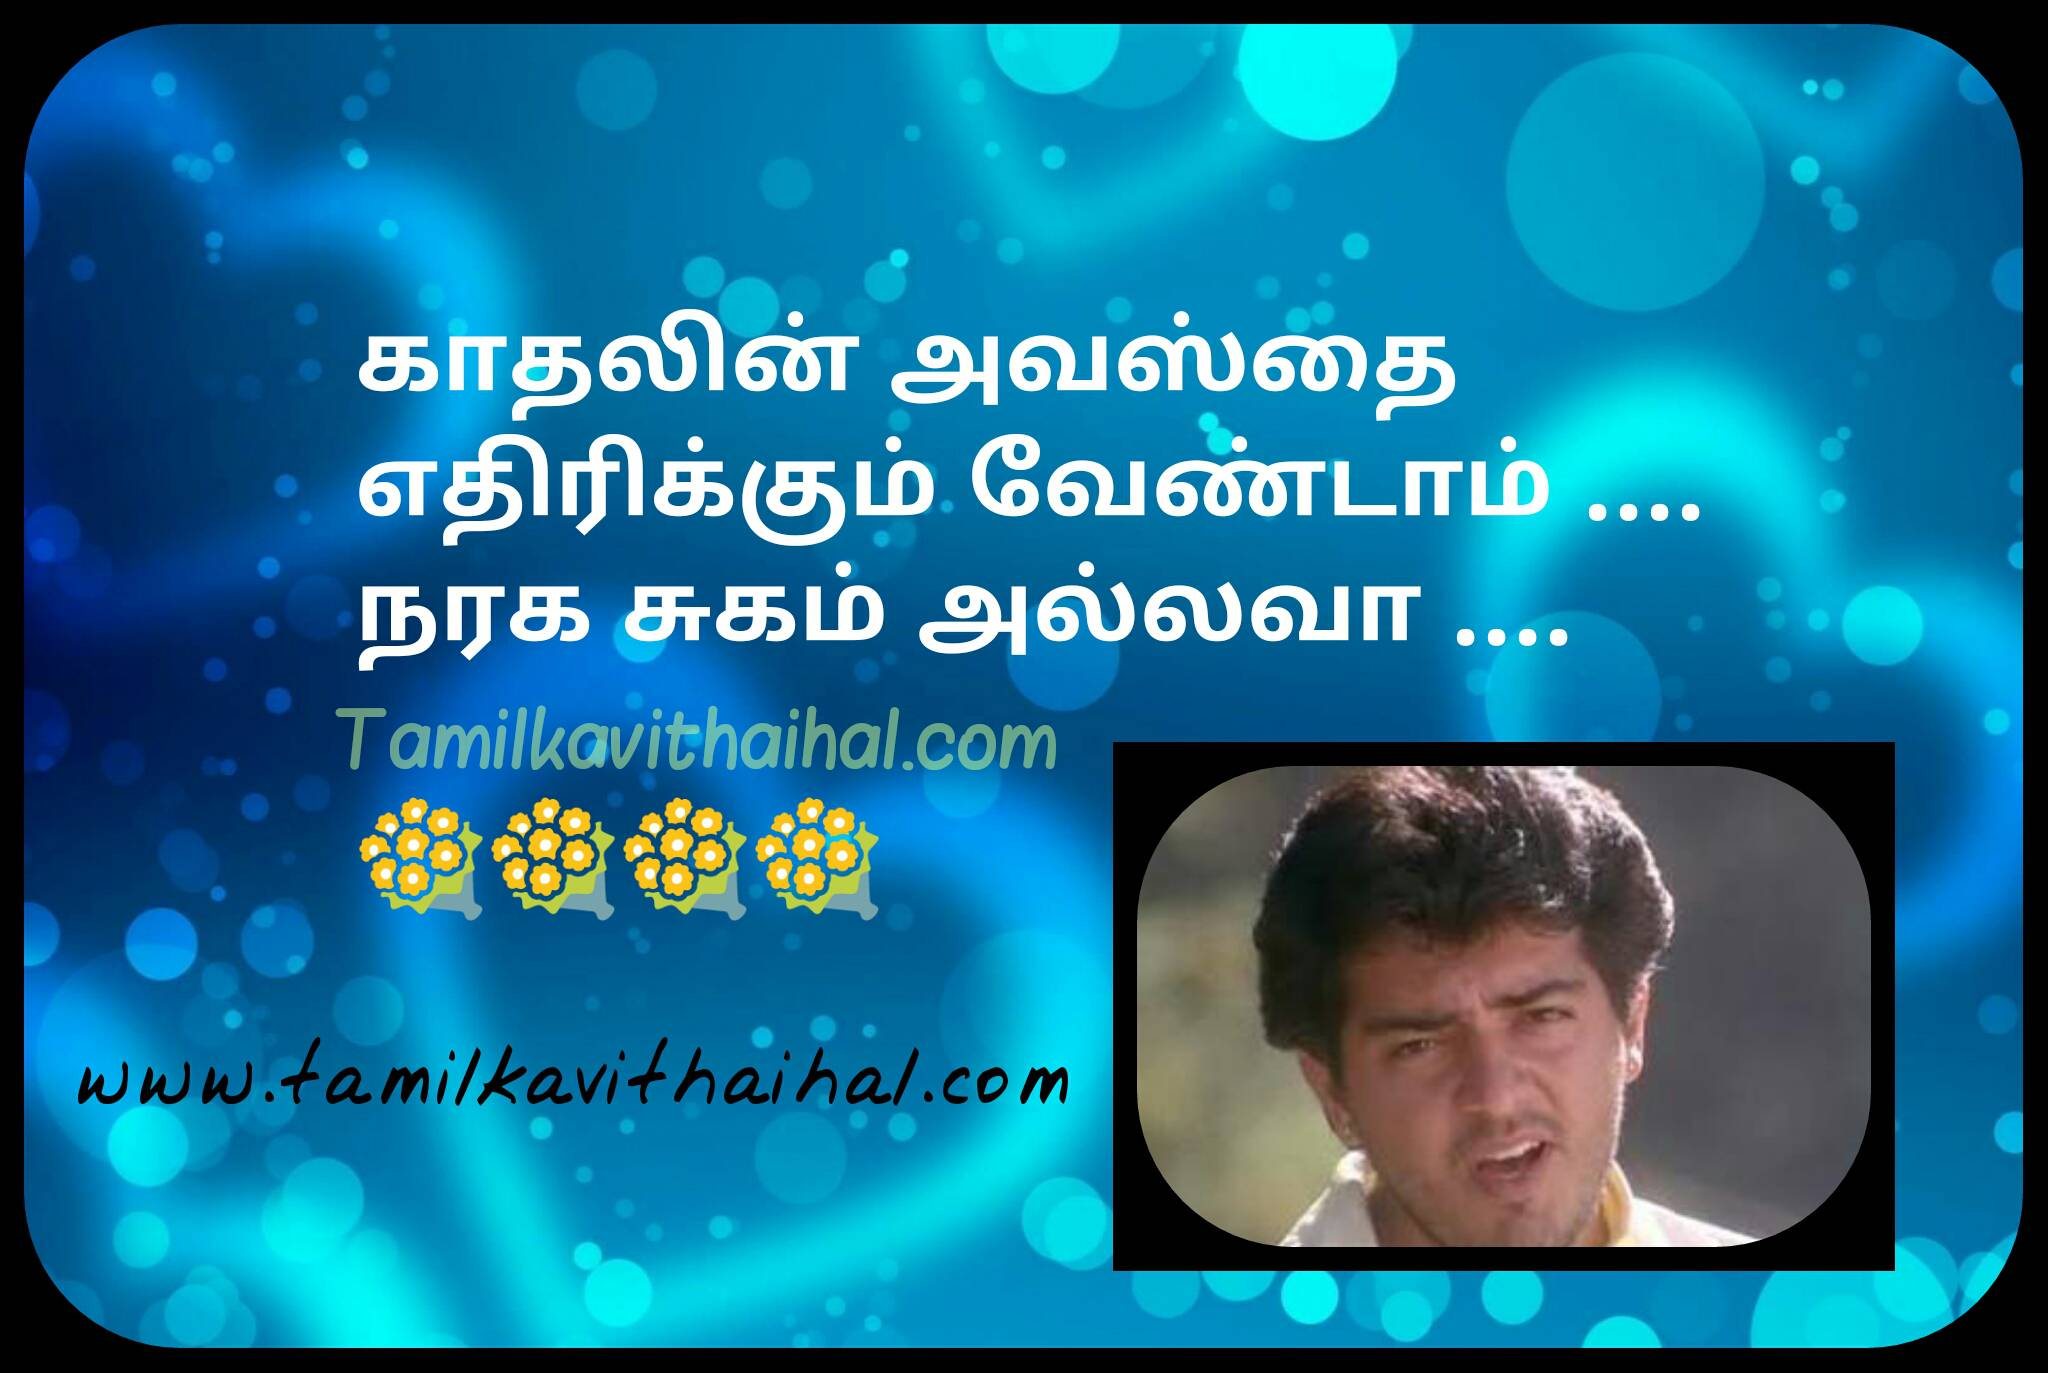 Beautiful ajith song images dheena film sollamal one side love proposal songquotes wallpapper